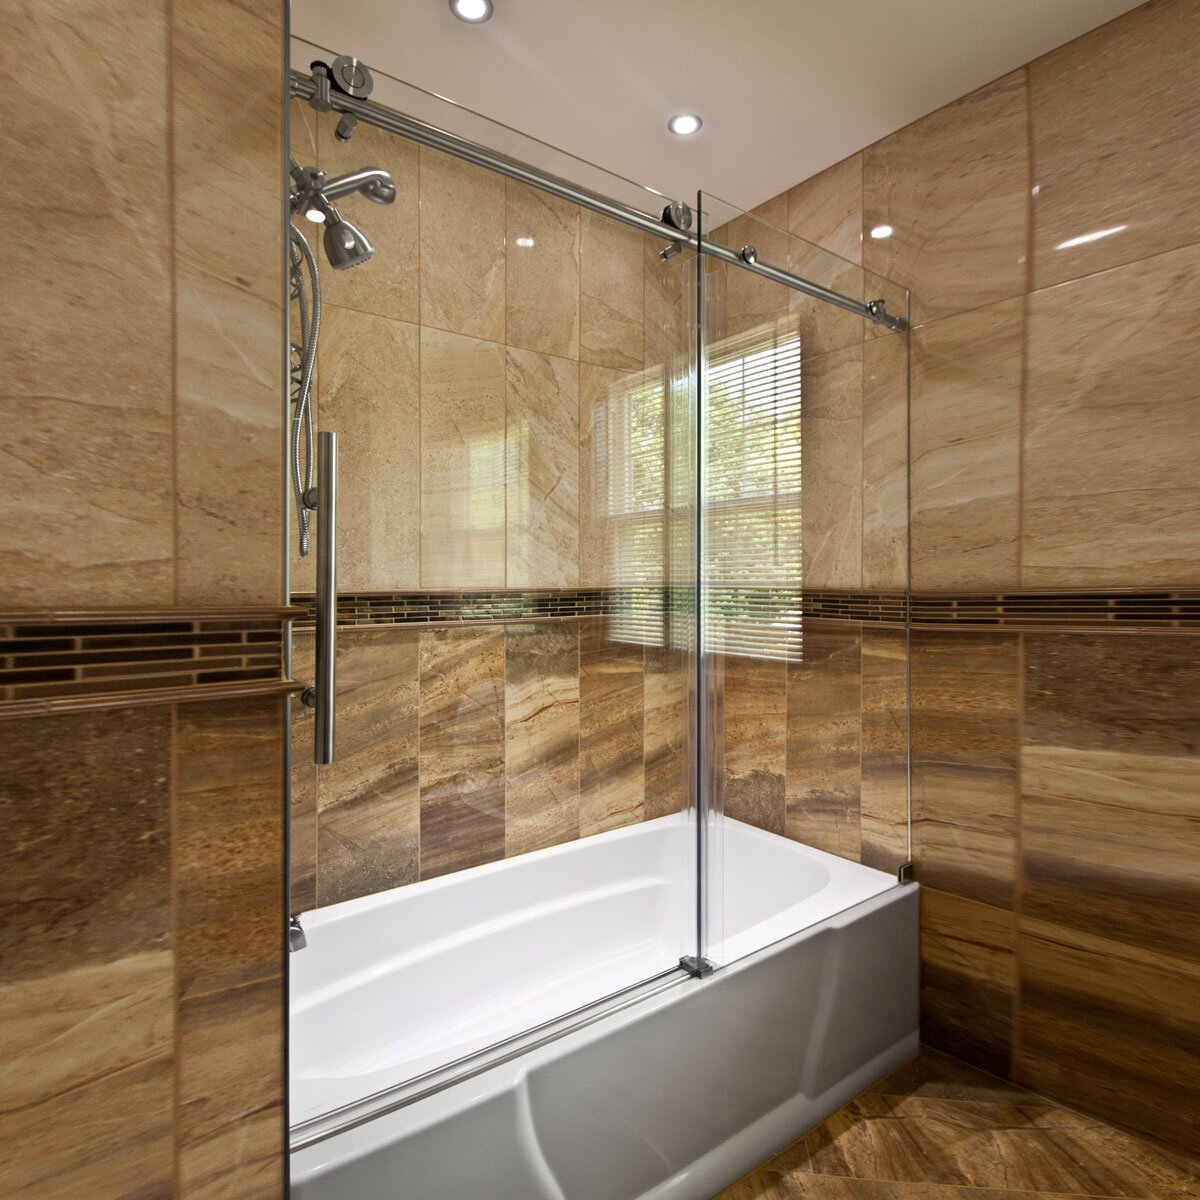 Bathtub Glass Door Slidding Design Installed On Laminate Floor